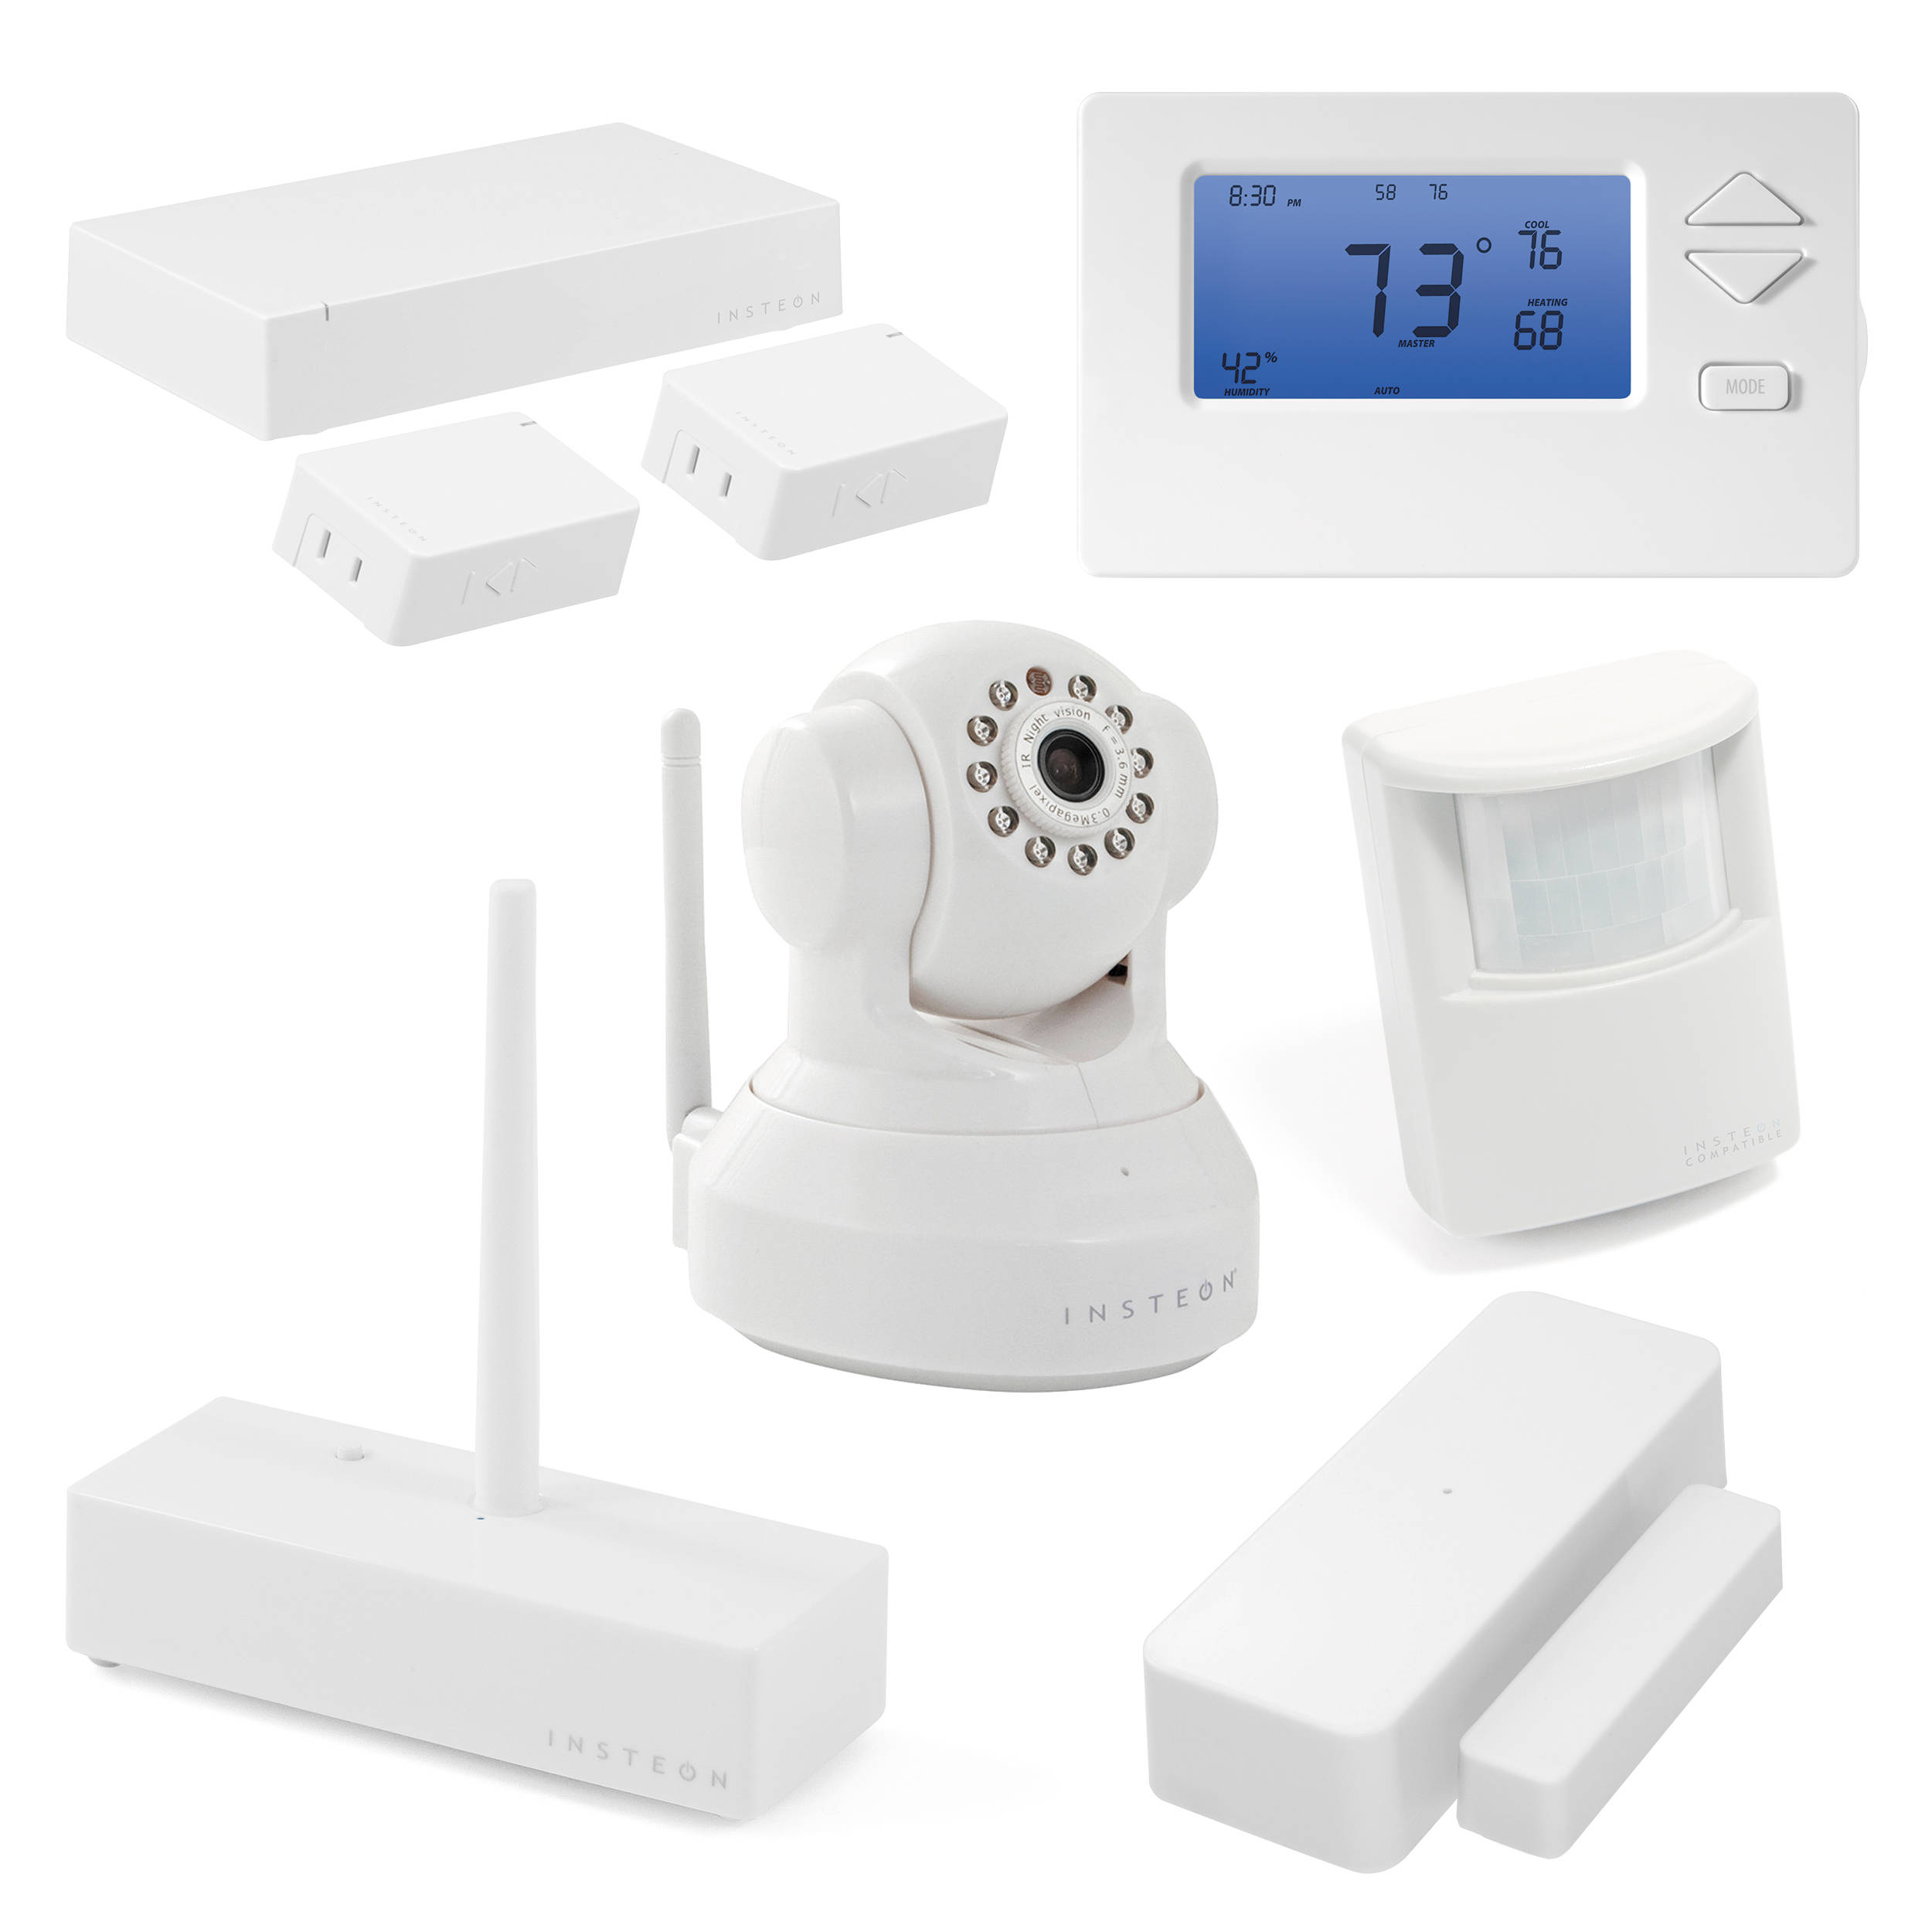 INSTEON Connected Home Automation Kit